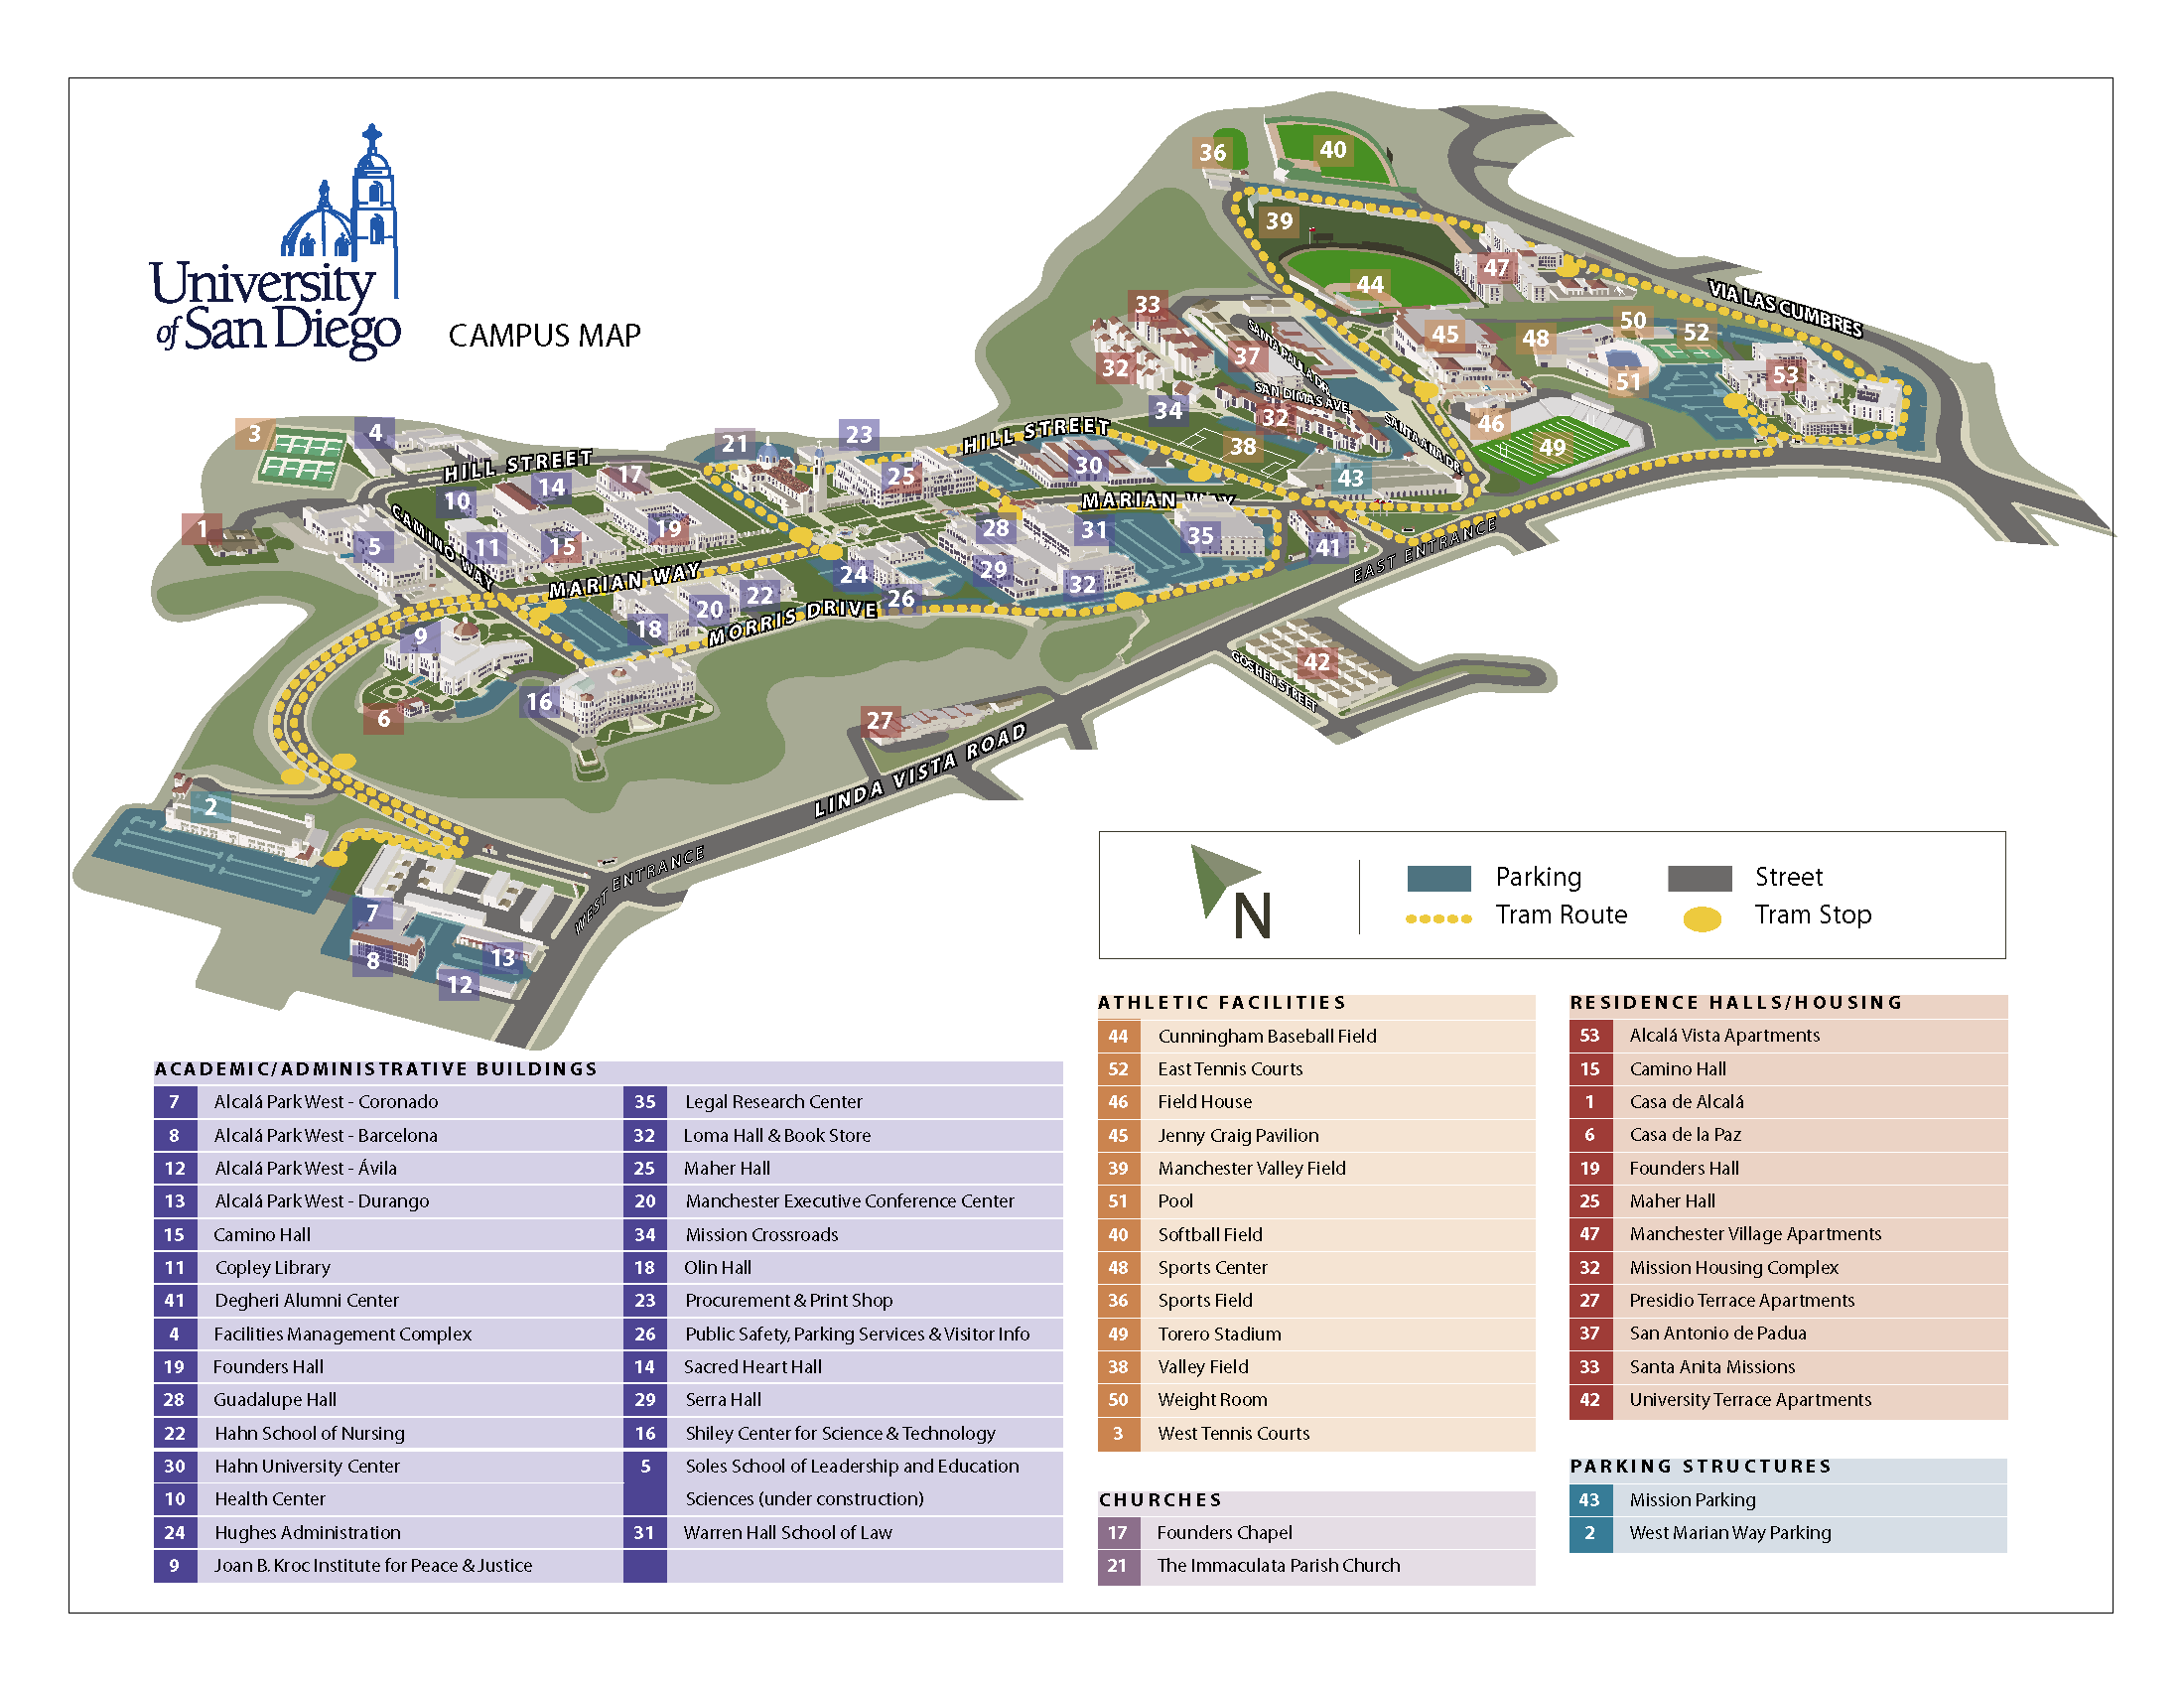 Usd Vermillion Campus Map.Usd Campus Map Cyndiimenna